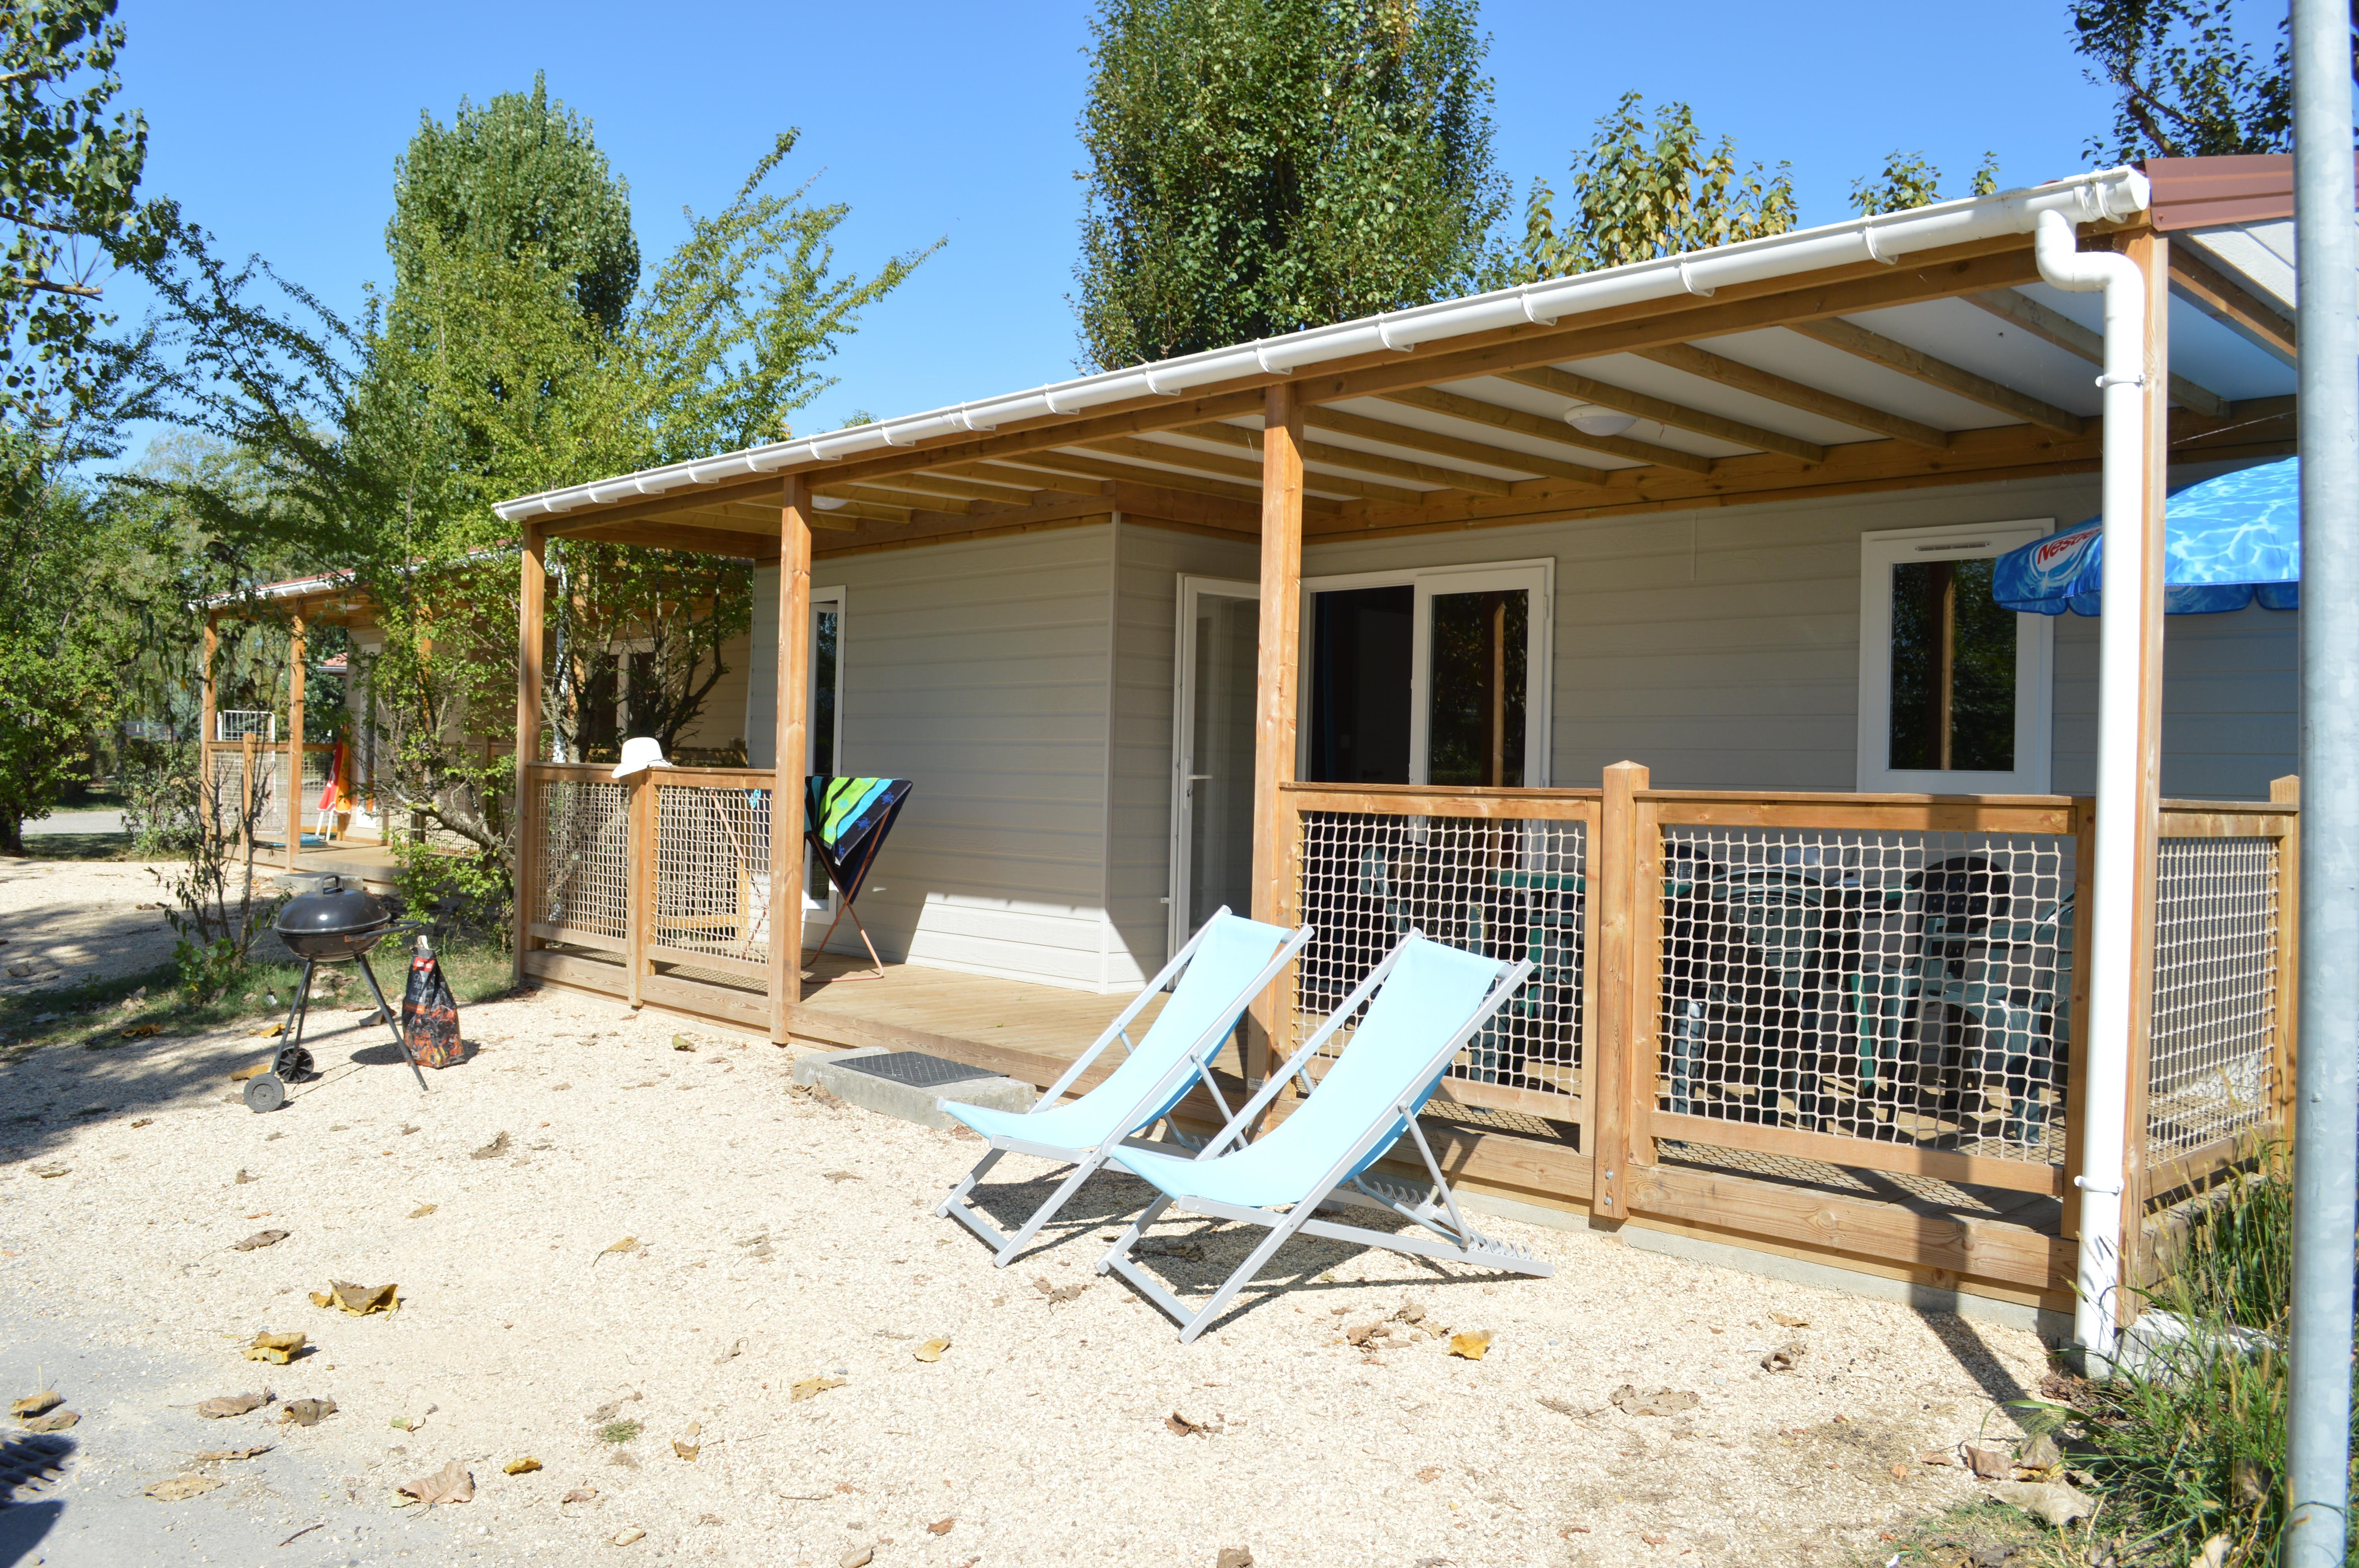 Accommodation - Chalet Navire 3 Bedrooms 35M² 2017/2018 - Camping Ile de la Comtesse